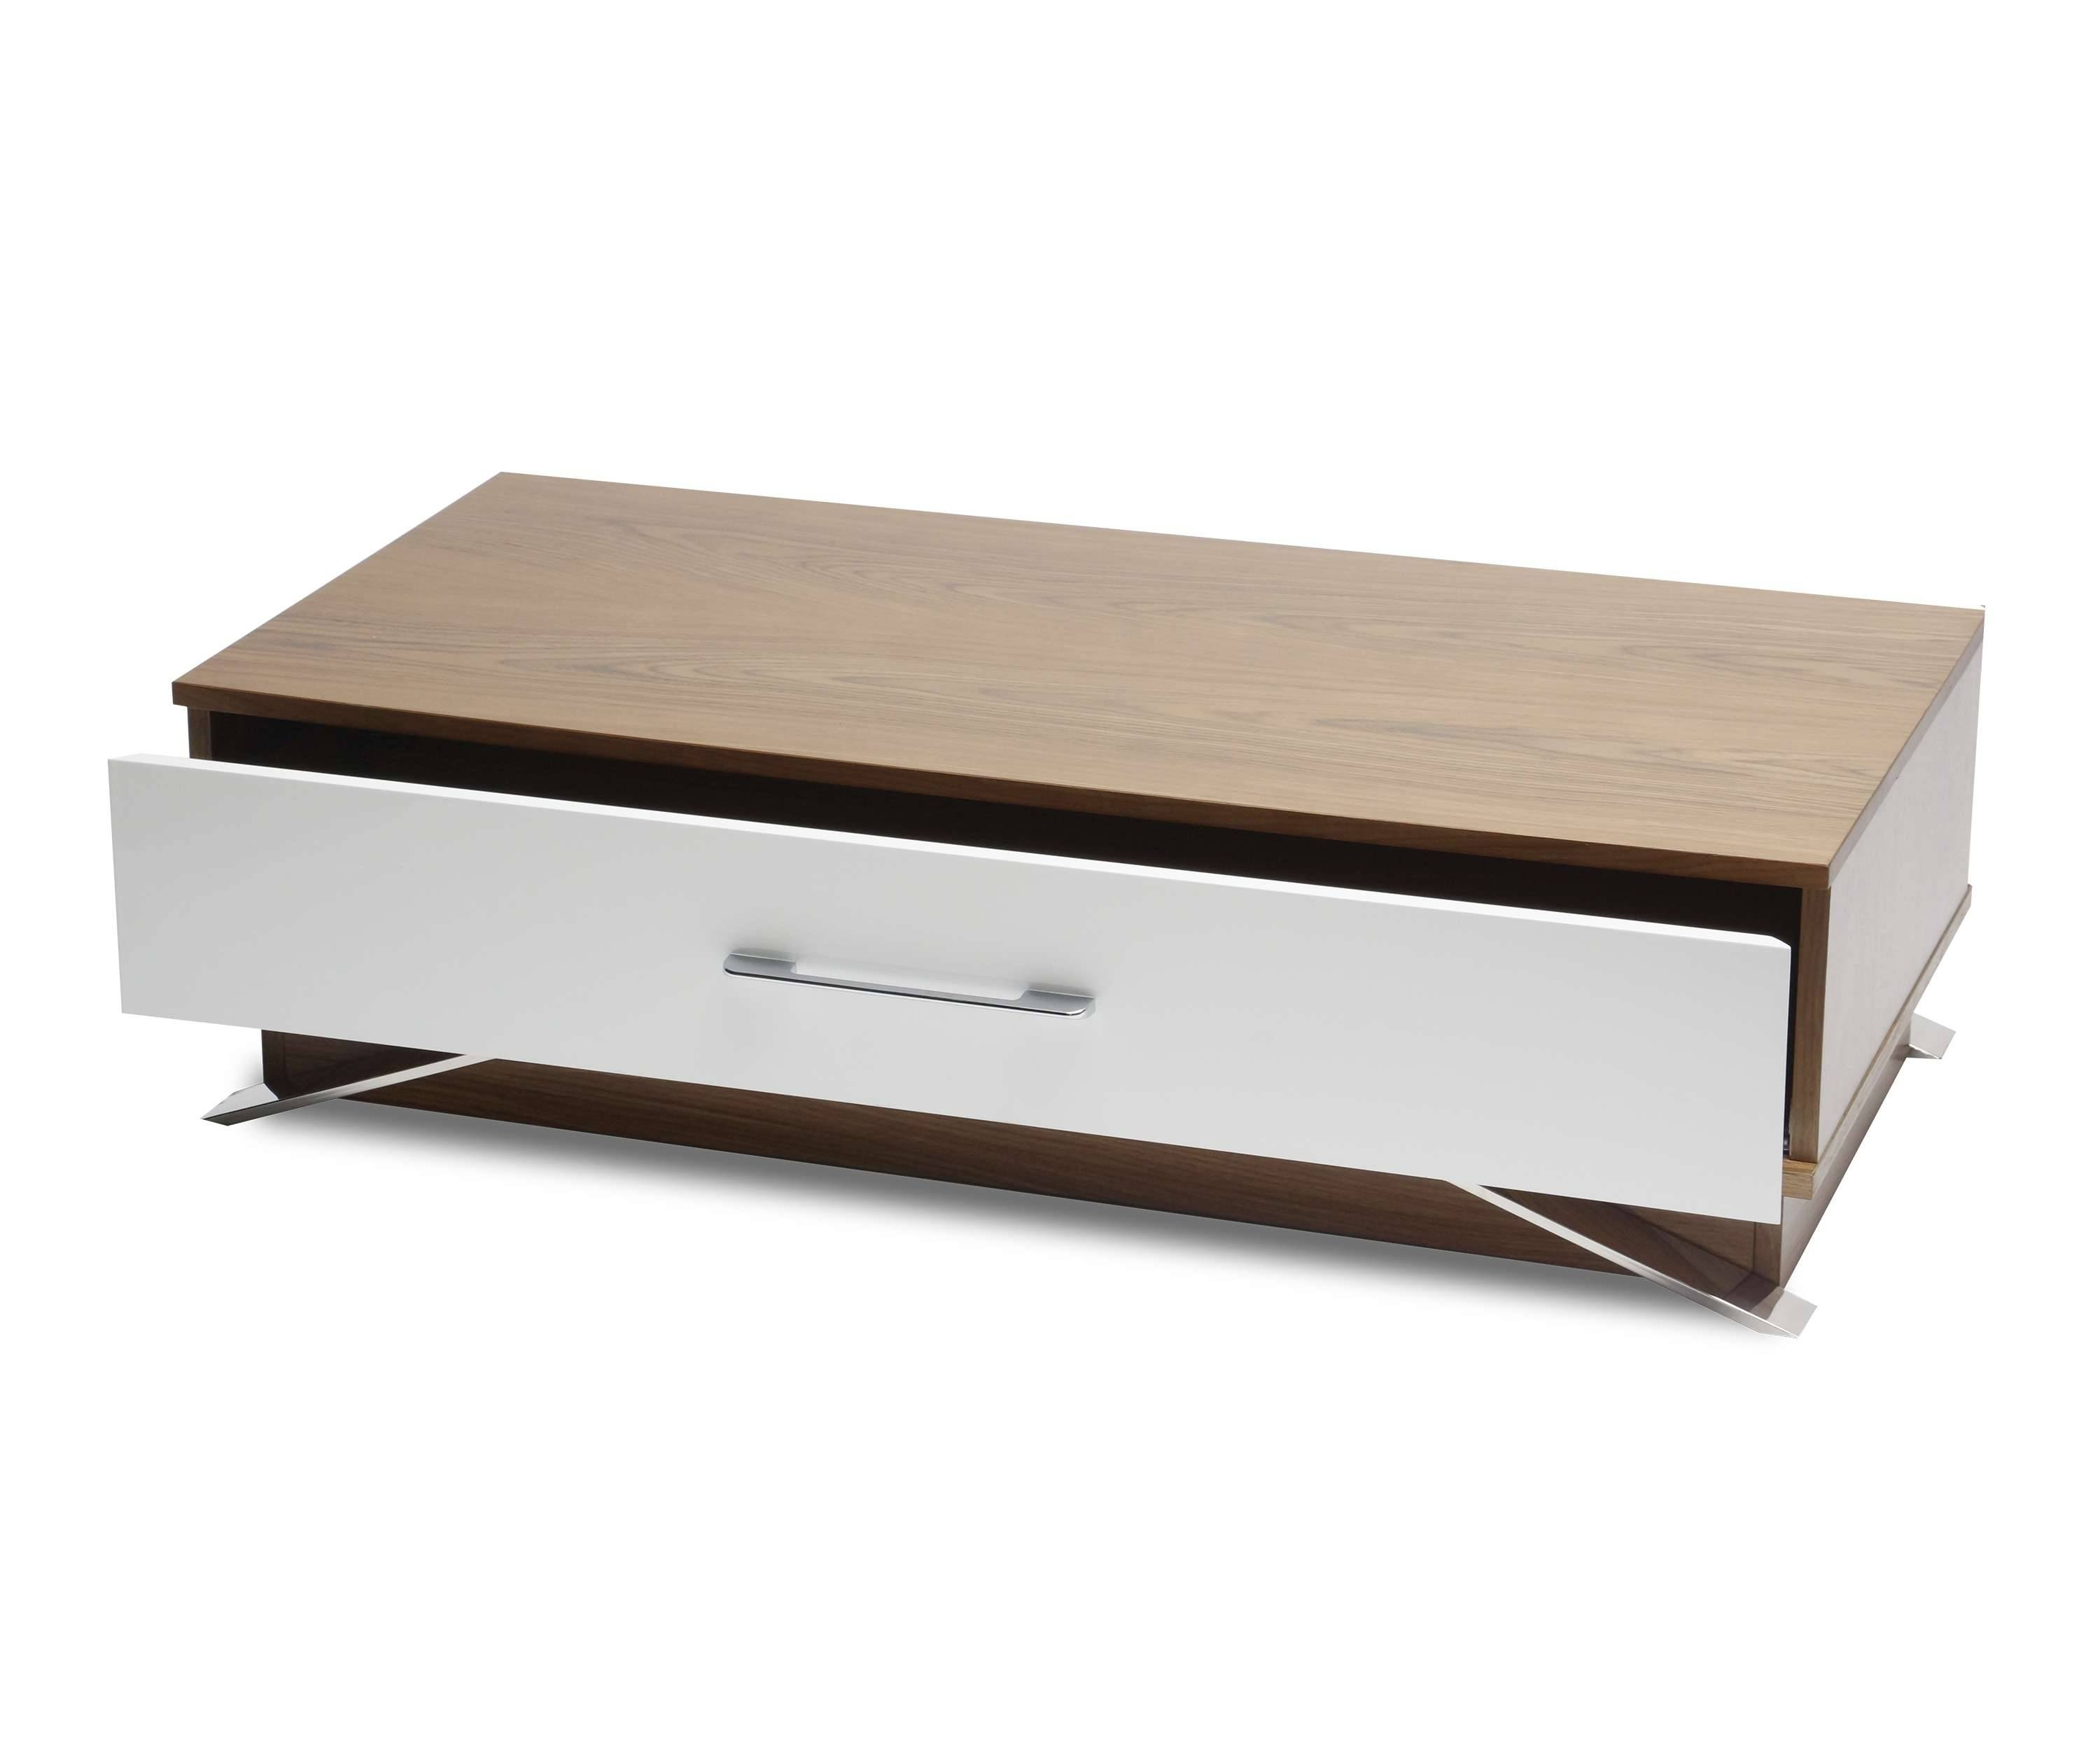 Bordeaux Coffee Table | Zyance Furniture pertaining to Bordeaux Coffee Tables (Image 6 of 30)